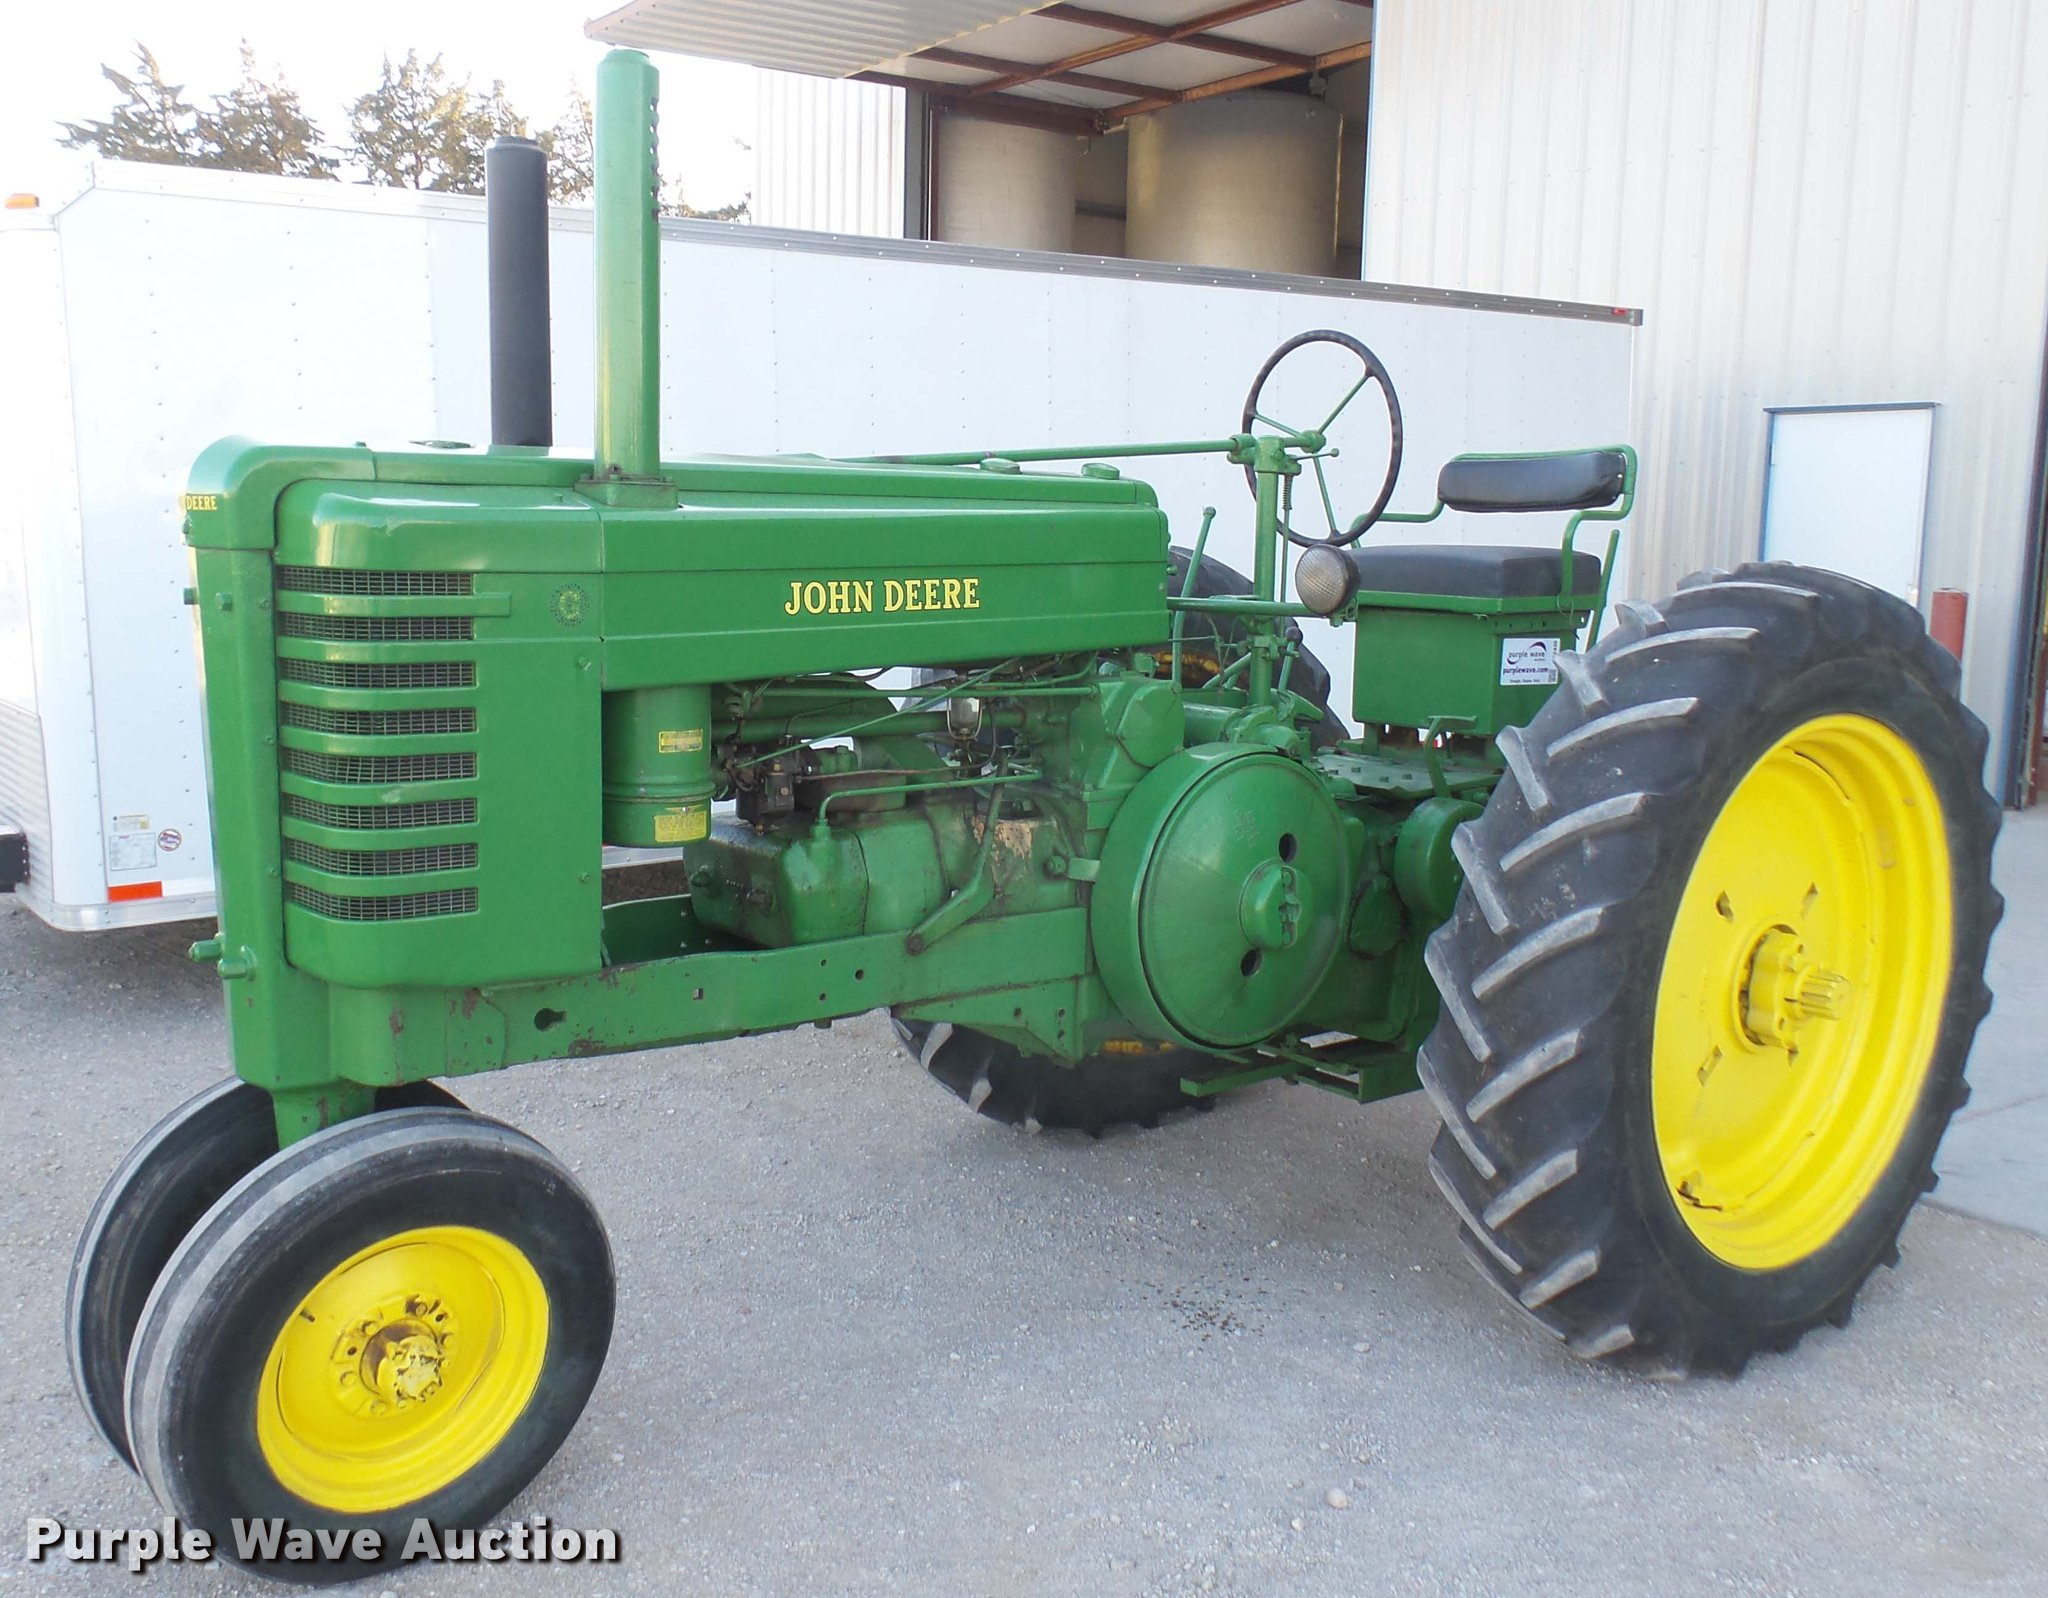 john deere g tractor for sale bmw wiring diagram symbols item dc2436 sold february 13 knigh image